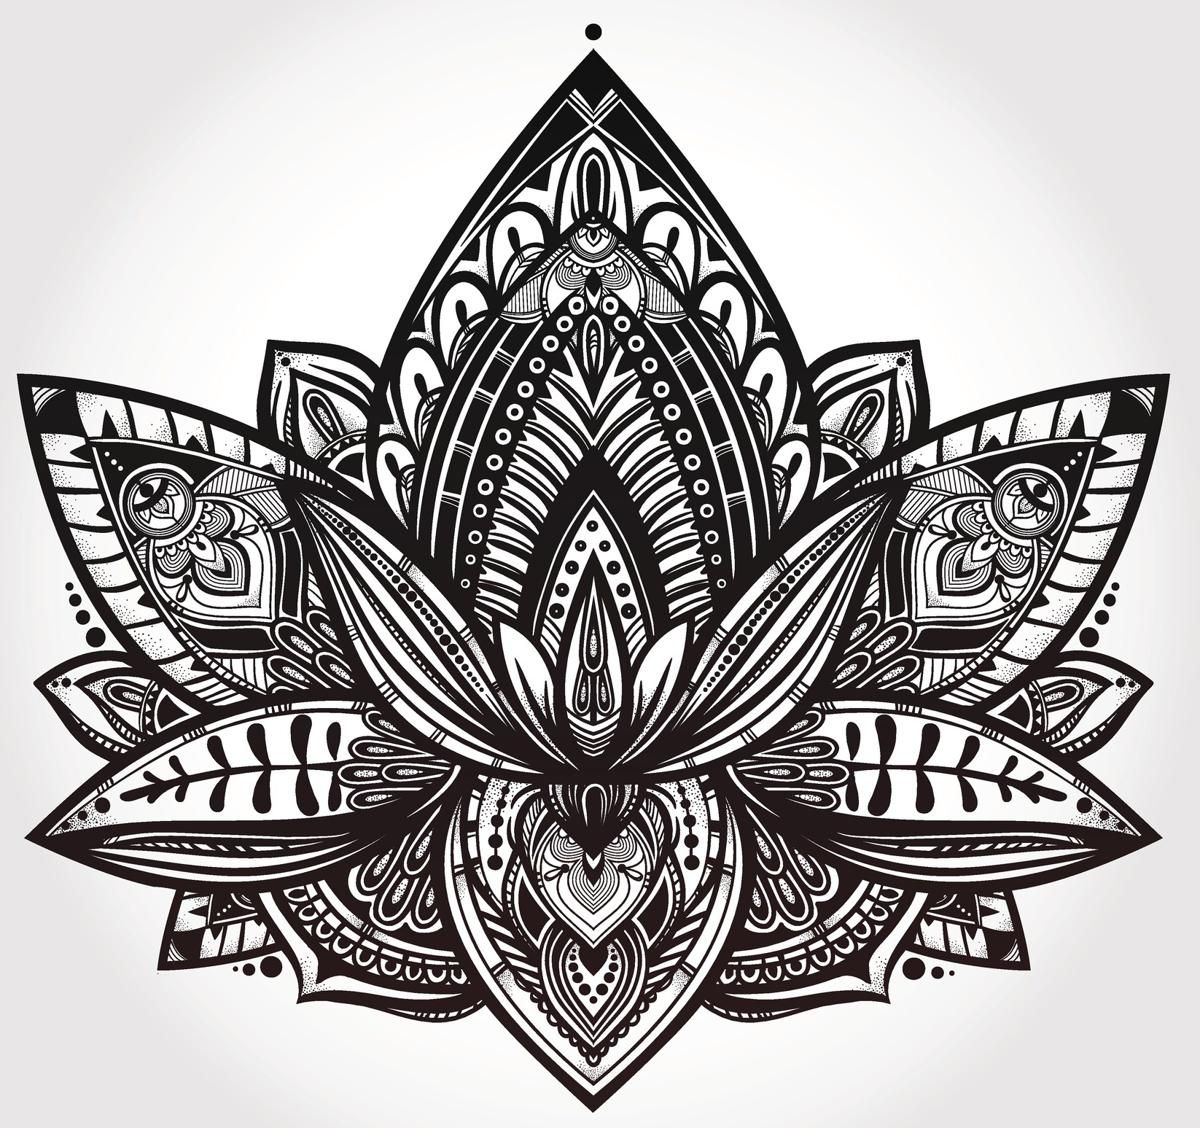 These are the most popular design ideas for hippie tattoos hippie royalty free lotus flower tattoo designs photos and stock photography izmirmasajfo Gallery